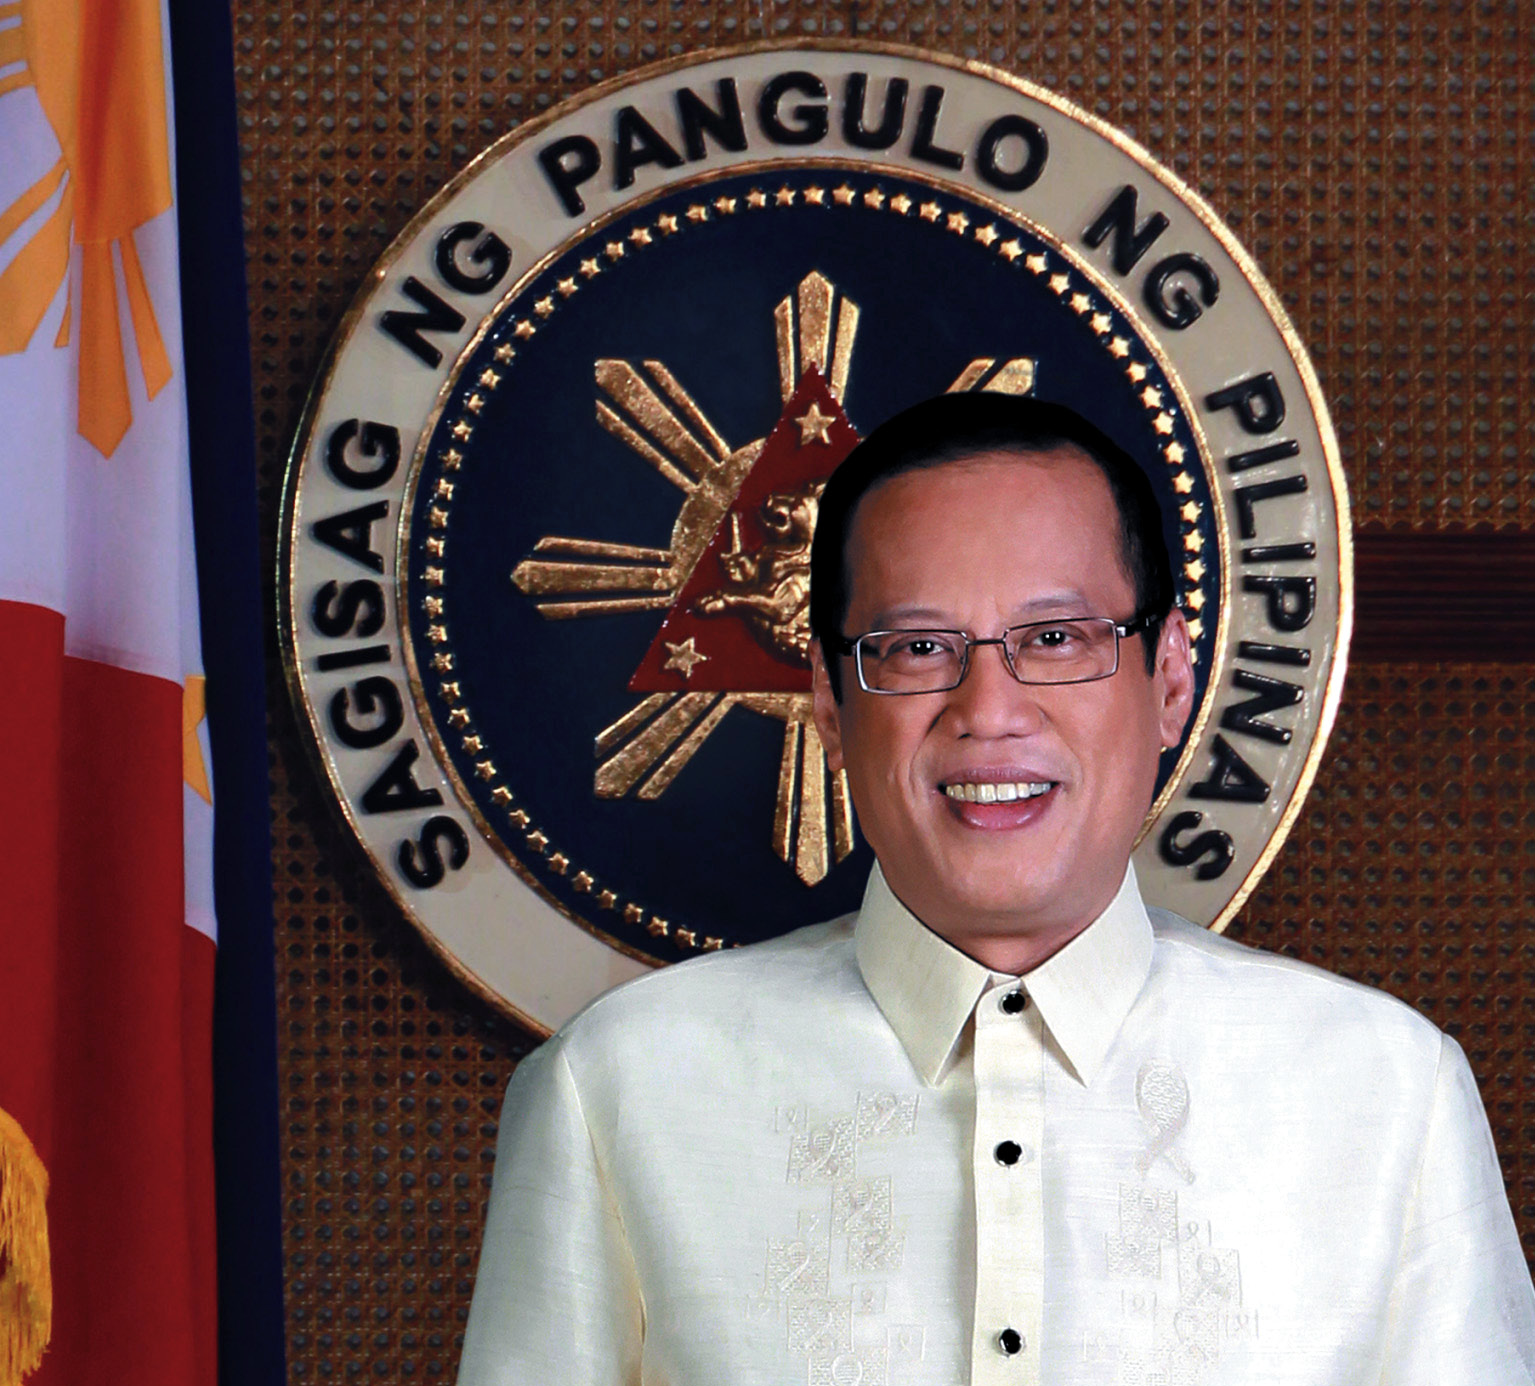 """economic policies of noynoy aquino Foreign policy orientation), he intends to make the country more fit for future  challenges  despite all the political turbulence, the economic situation of the  philippines  in june 2010, benigno """"noynoy"""" aquino was elected president,  with a."""